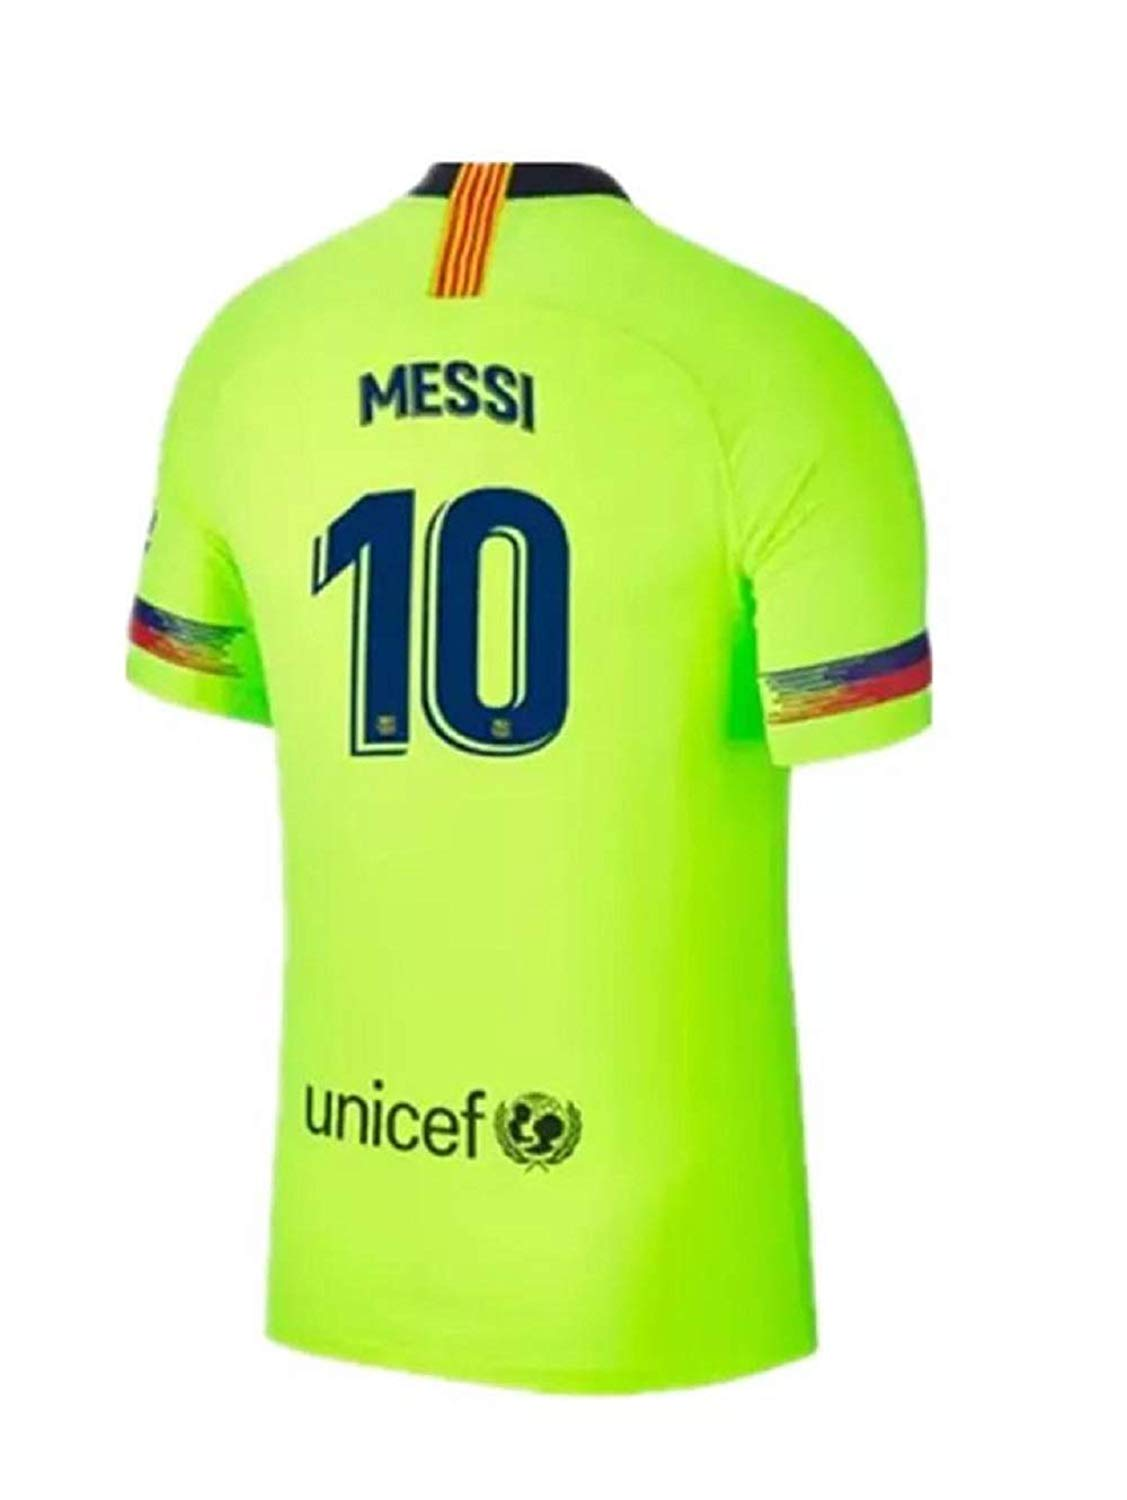 13e7dbdf53a Get Quotations · Lakivde Men s Messi New Away Jerseys 18-19 Barcelona  10  Football Jersey Soccer Jersey